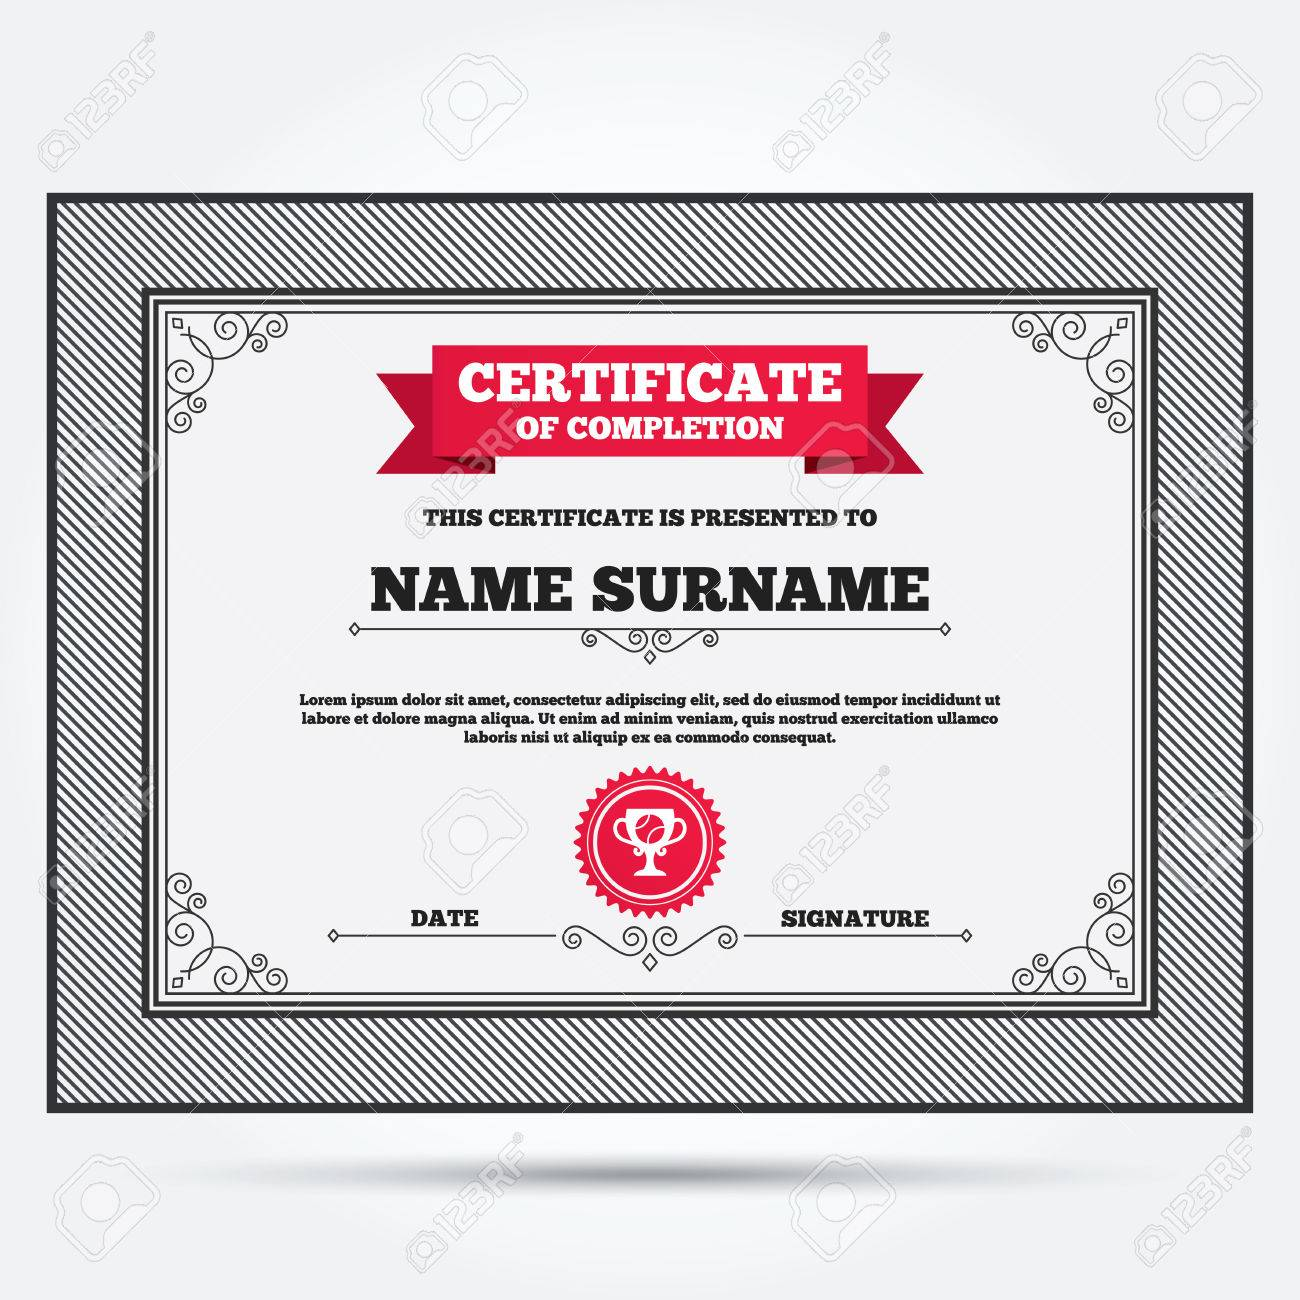 Tennis gift certificate template images templates example free tennis award certificate template business resume experienced certificate of completion tennis ball sign icon sport symbol yadclub Gallery